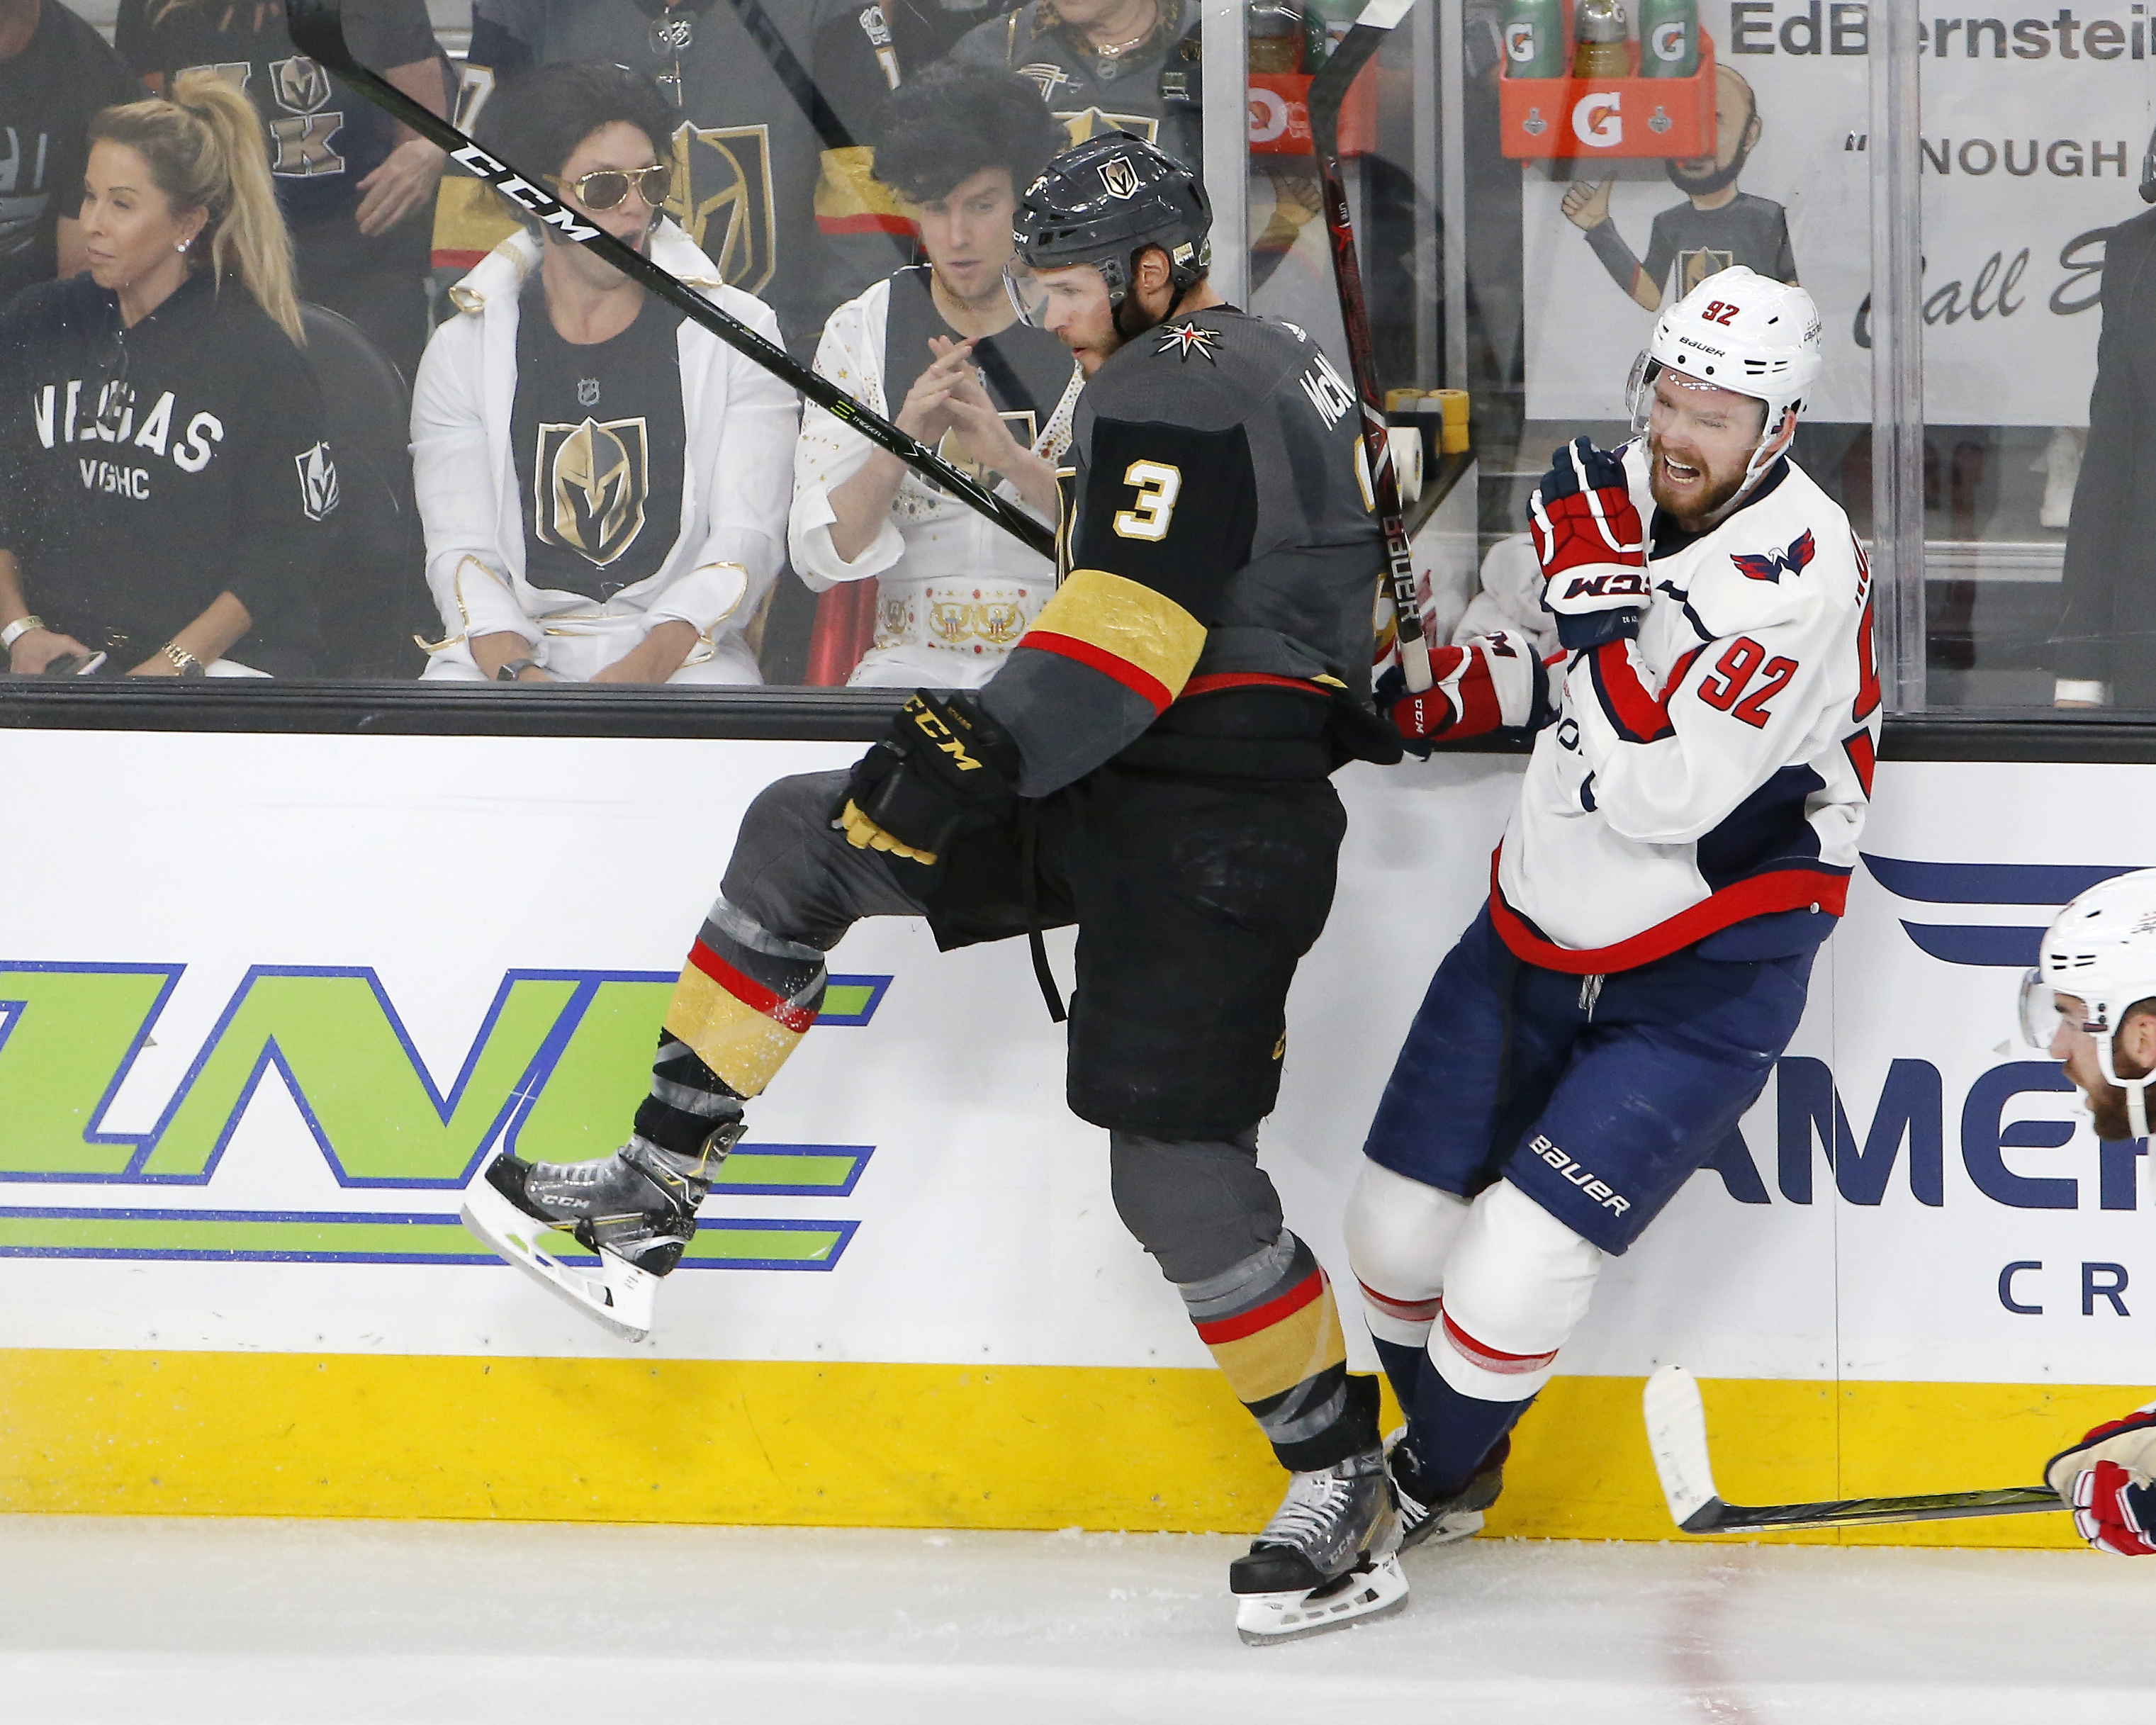 d3790f5ac9d Evgeny Kuznetsov  day-to-day  after leaving Game 2 - Washington Times